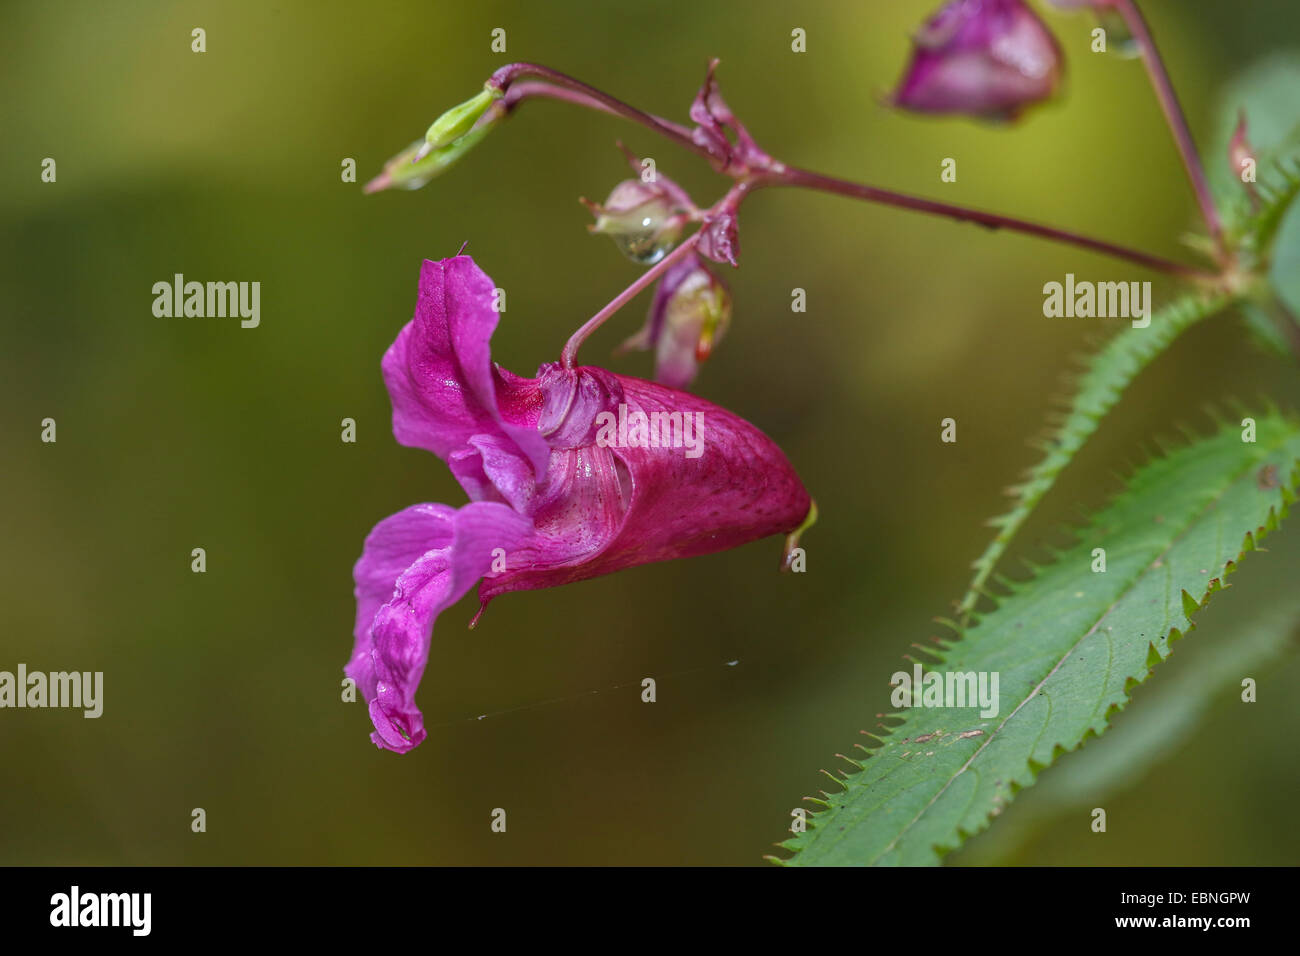 Himalayan balsam, Indian balsam, red jewelweed, ornamental jewelweed, policeman's helmet (Impatiens glandulifera), - Stock Image